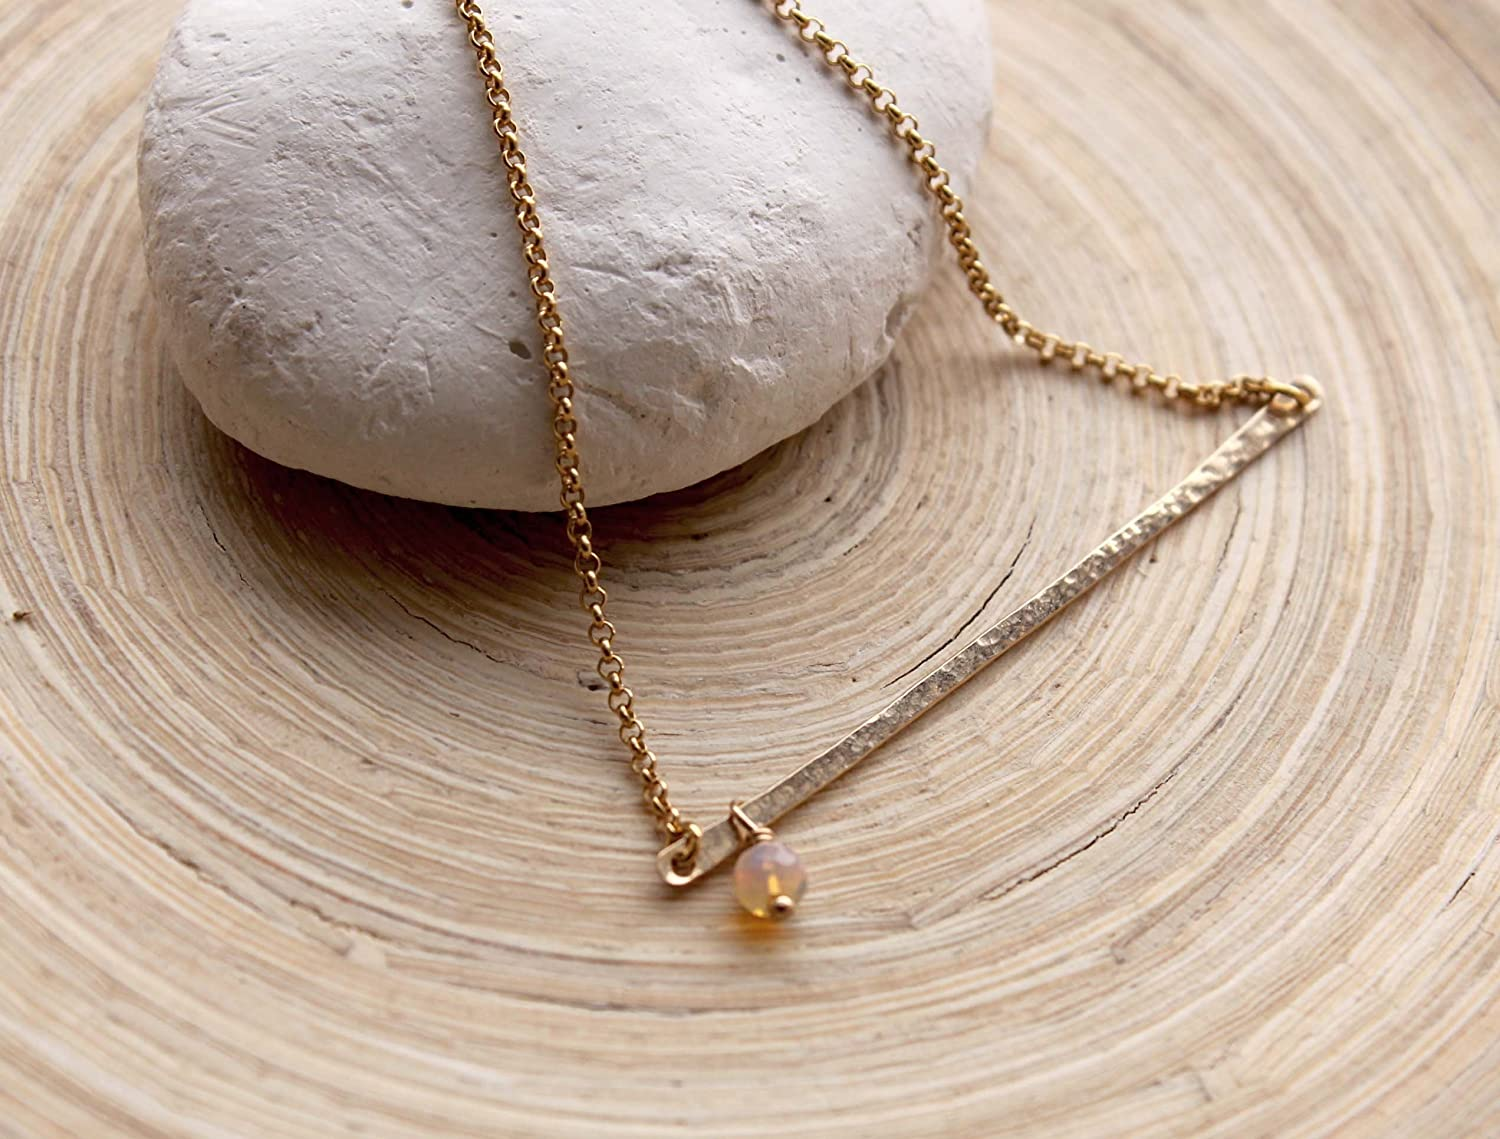 Dainty Gold Opal and Quartz Layered Necklce Ethiopian Opal and Rose Quartz Bar Necklace Minimal White Opal Necklace October Birthstone